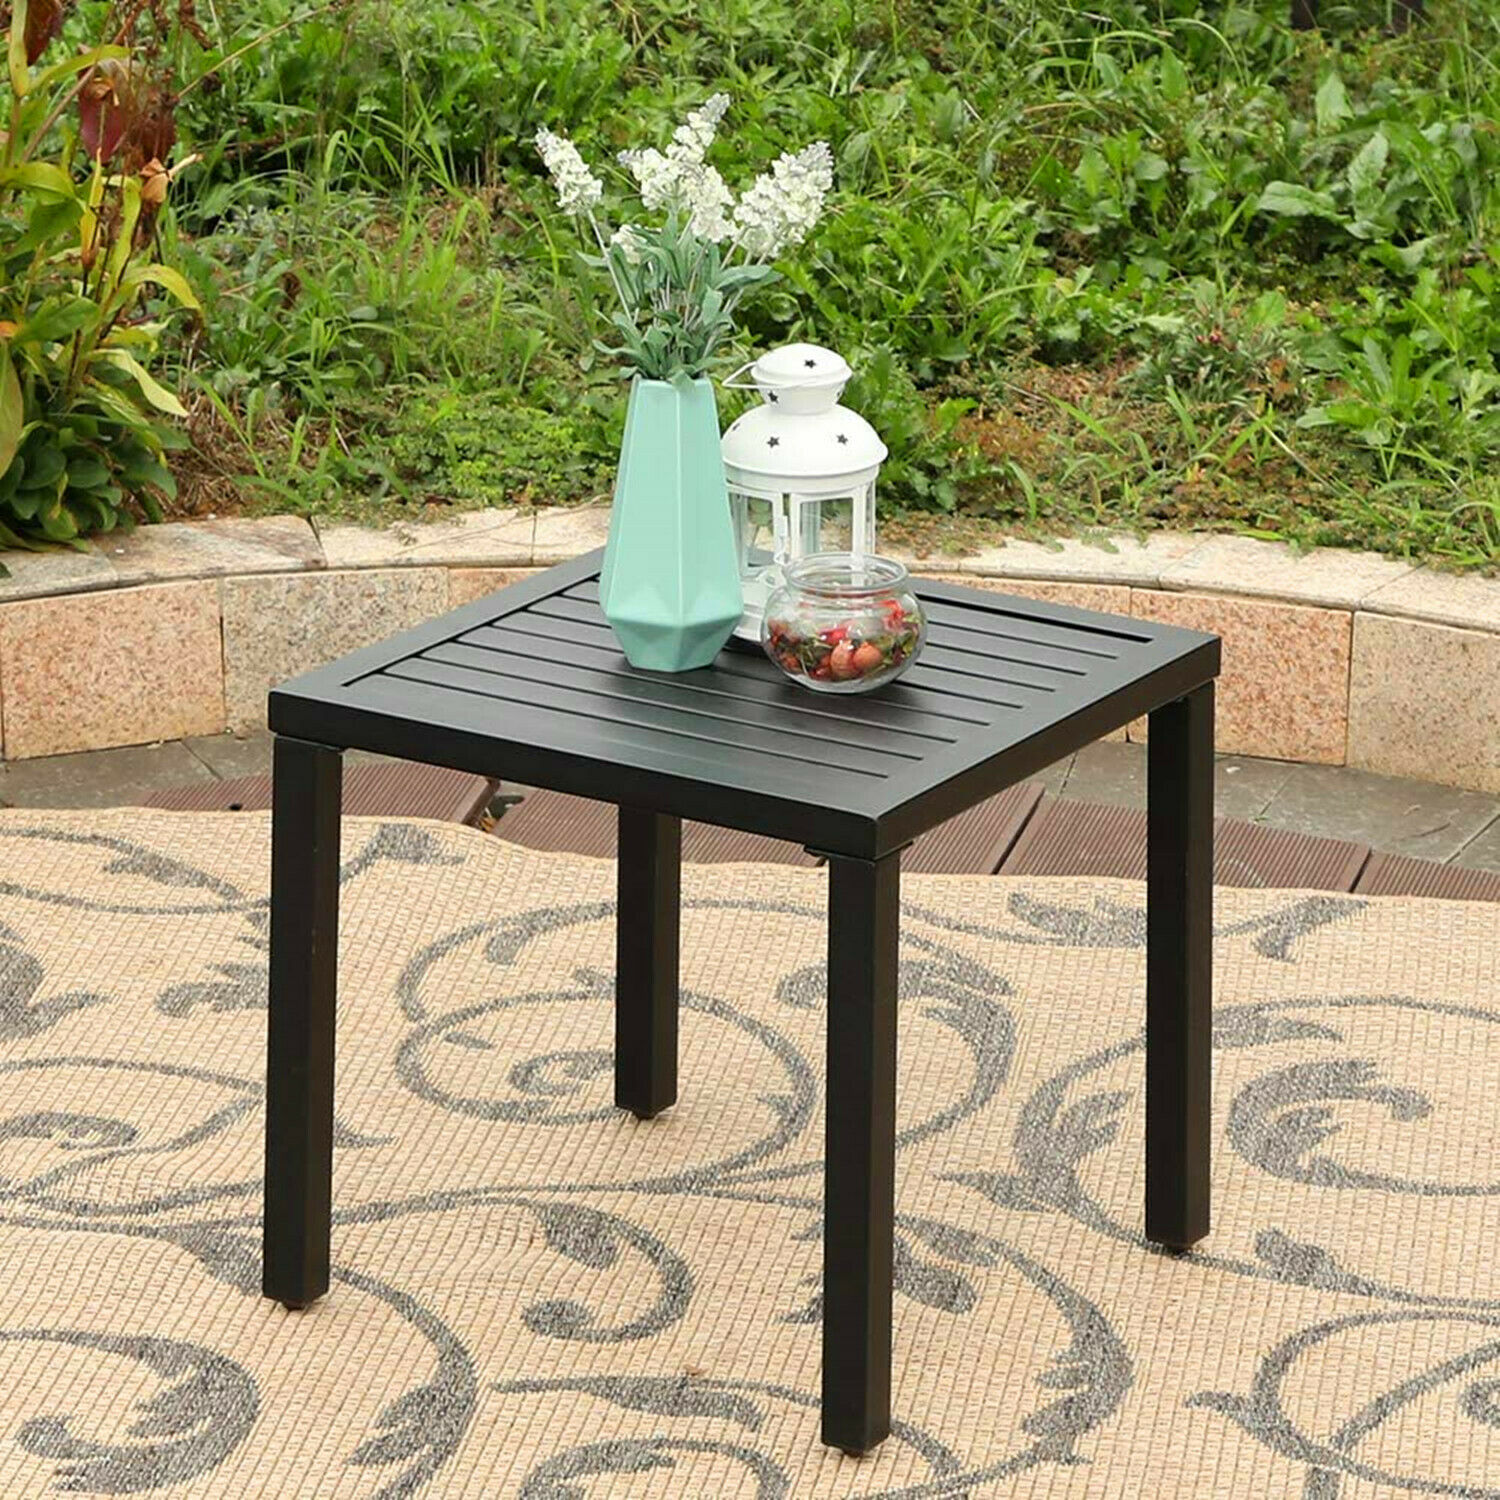 Side End Table Metal Patio Coffee Tables Square Black For Indoor Outdoor